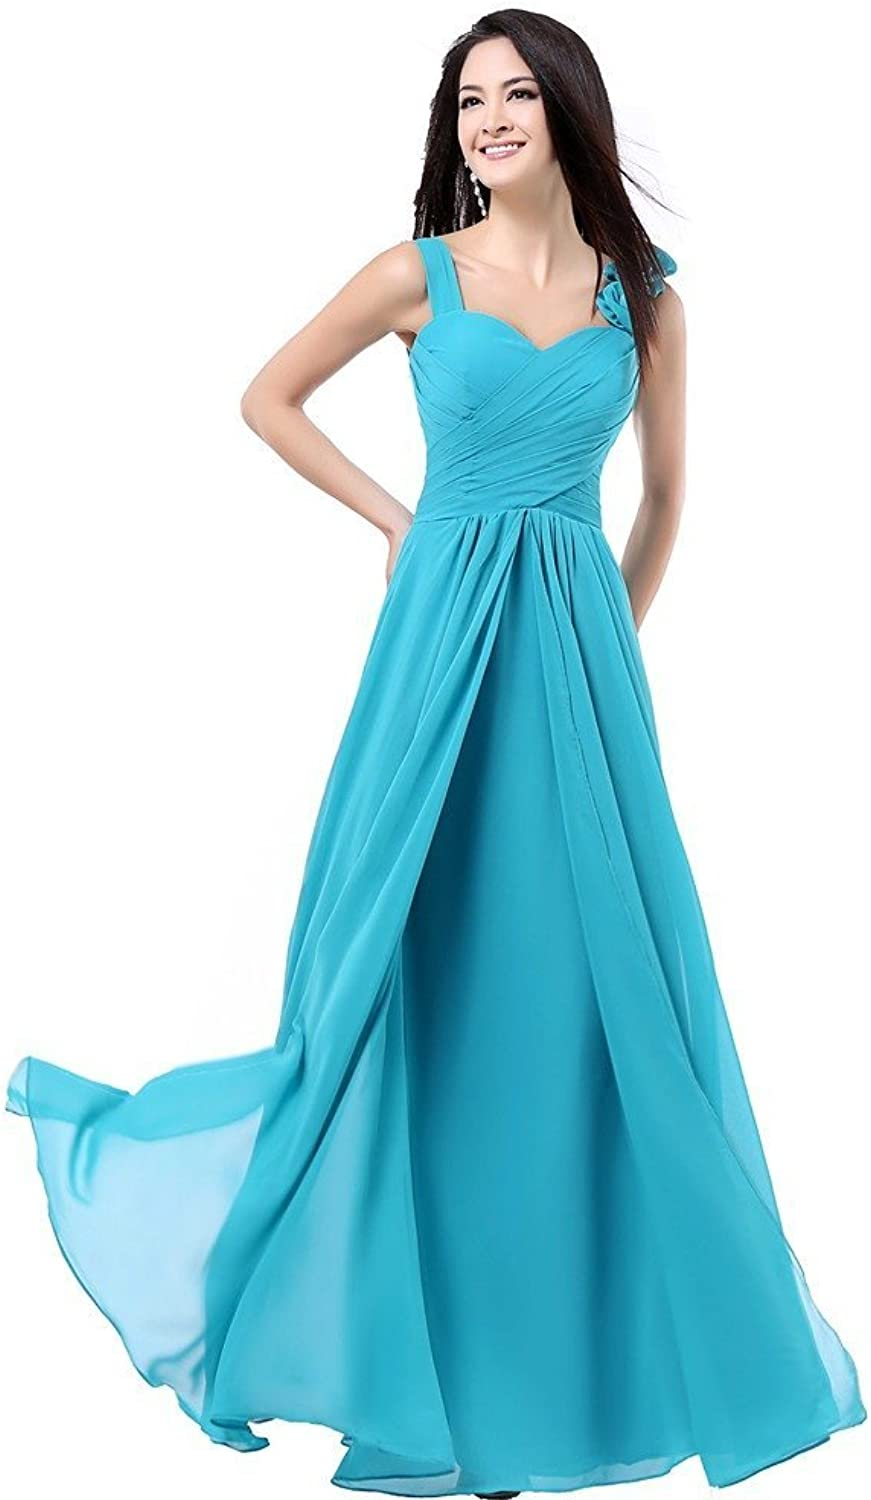 Angel Charmangel Women's Formal Bridesmaid Dress Gown Size 10 Turquoise